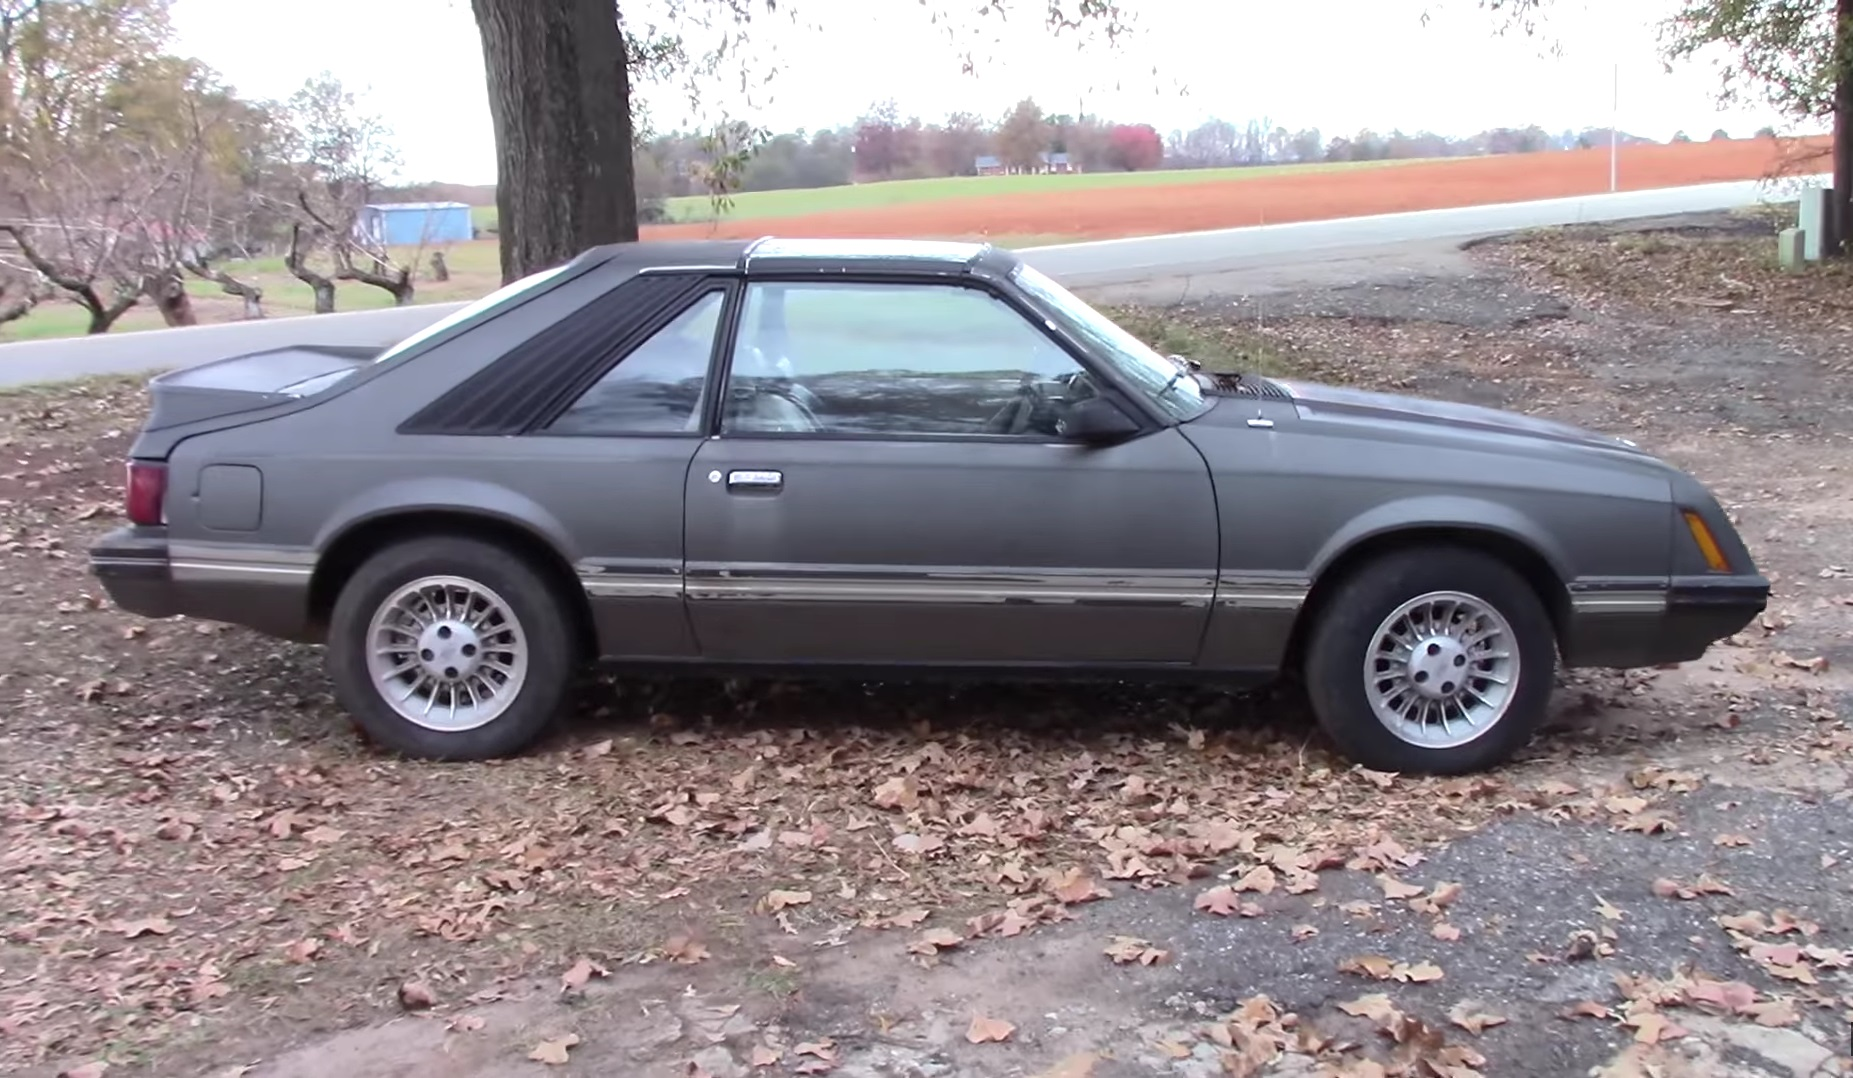 Video: First Driving Experience With A 1981 Ford Mustang